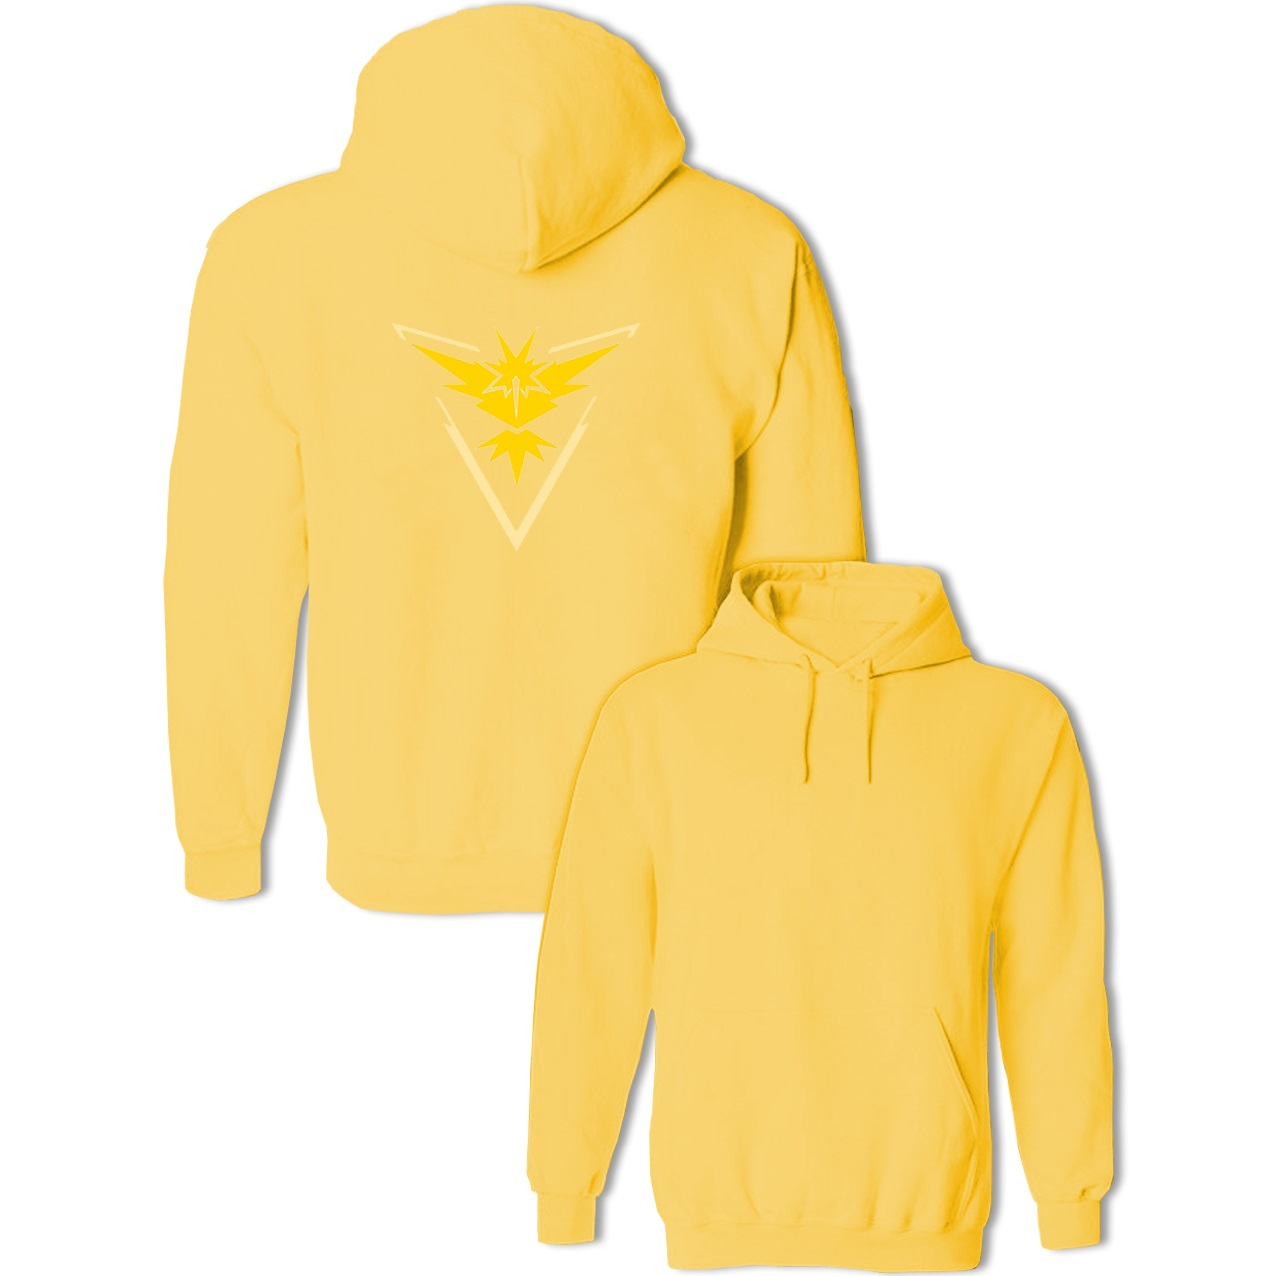 Classic Cartoon Pokemon Go Game Fans Zapdos Team Yellow Team Sweatshirts Womens Mens Hoodies Anime Costume Cosplay Pullovers